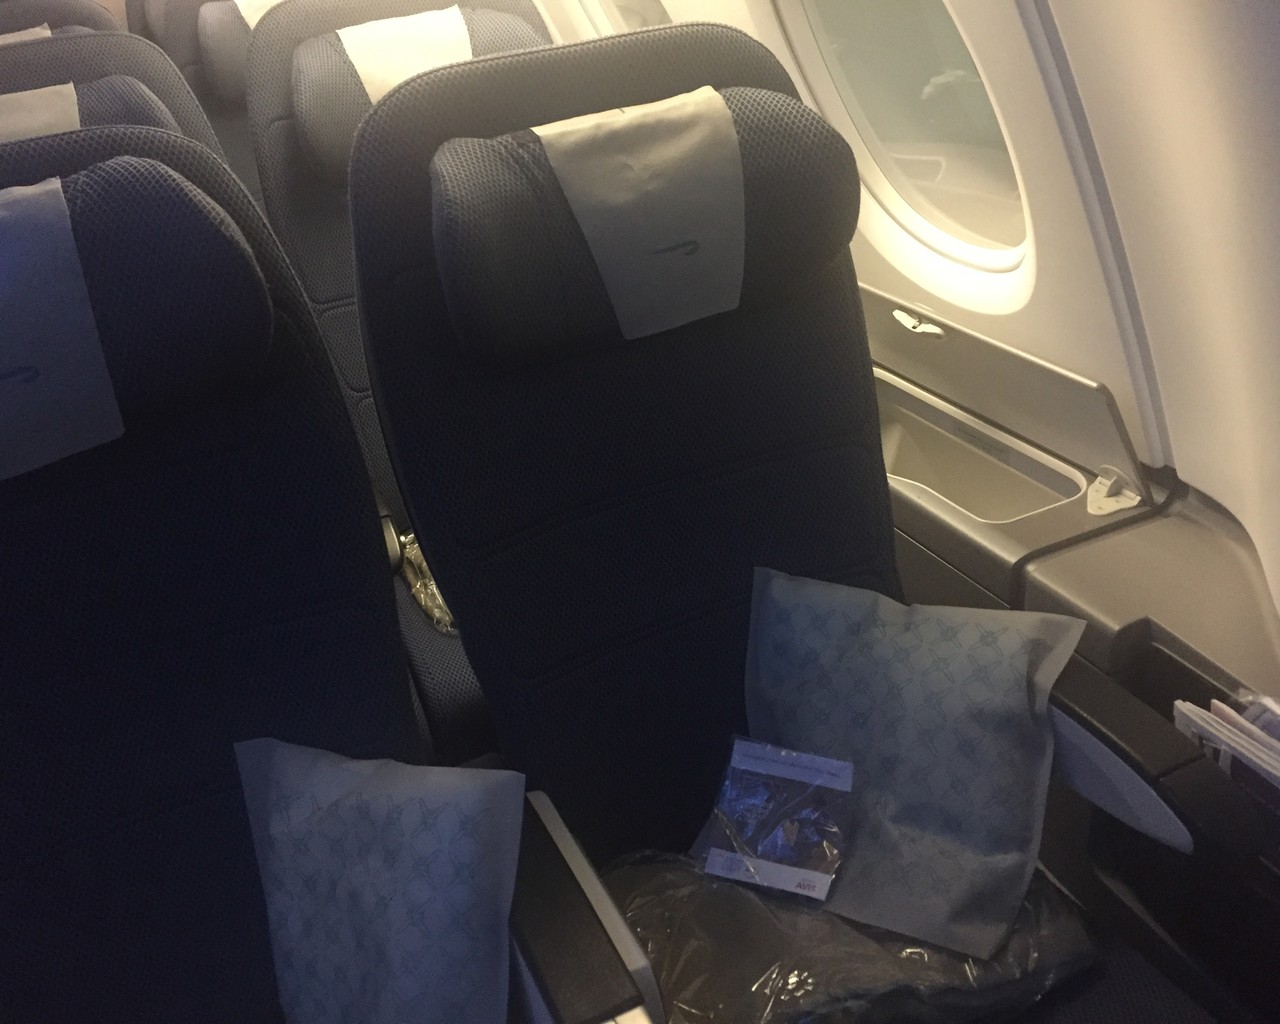 Review Of British Airways Flight From Los Angeles To